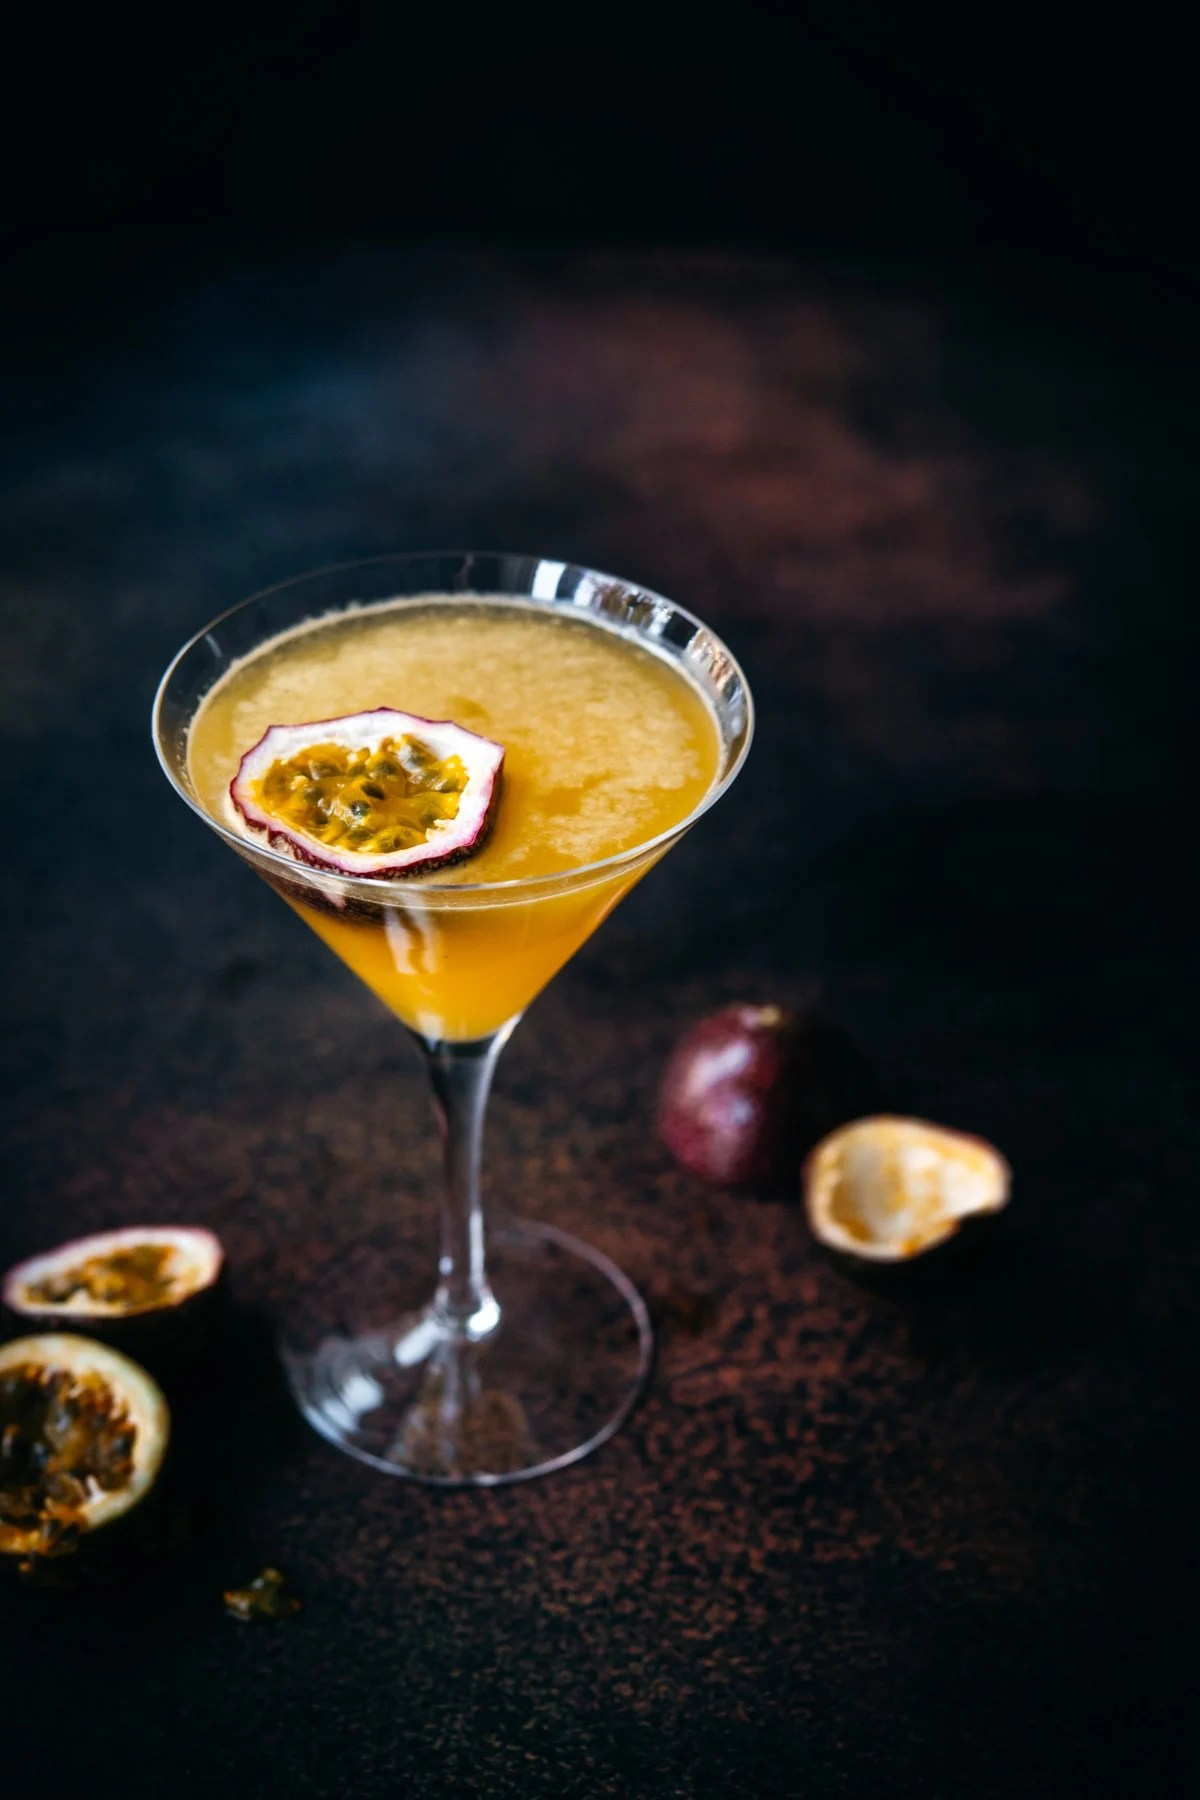 close up view of a passion fruit martini in a glass with dark backdrop.